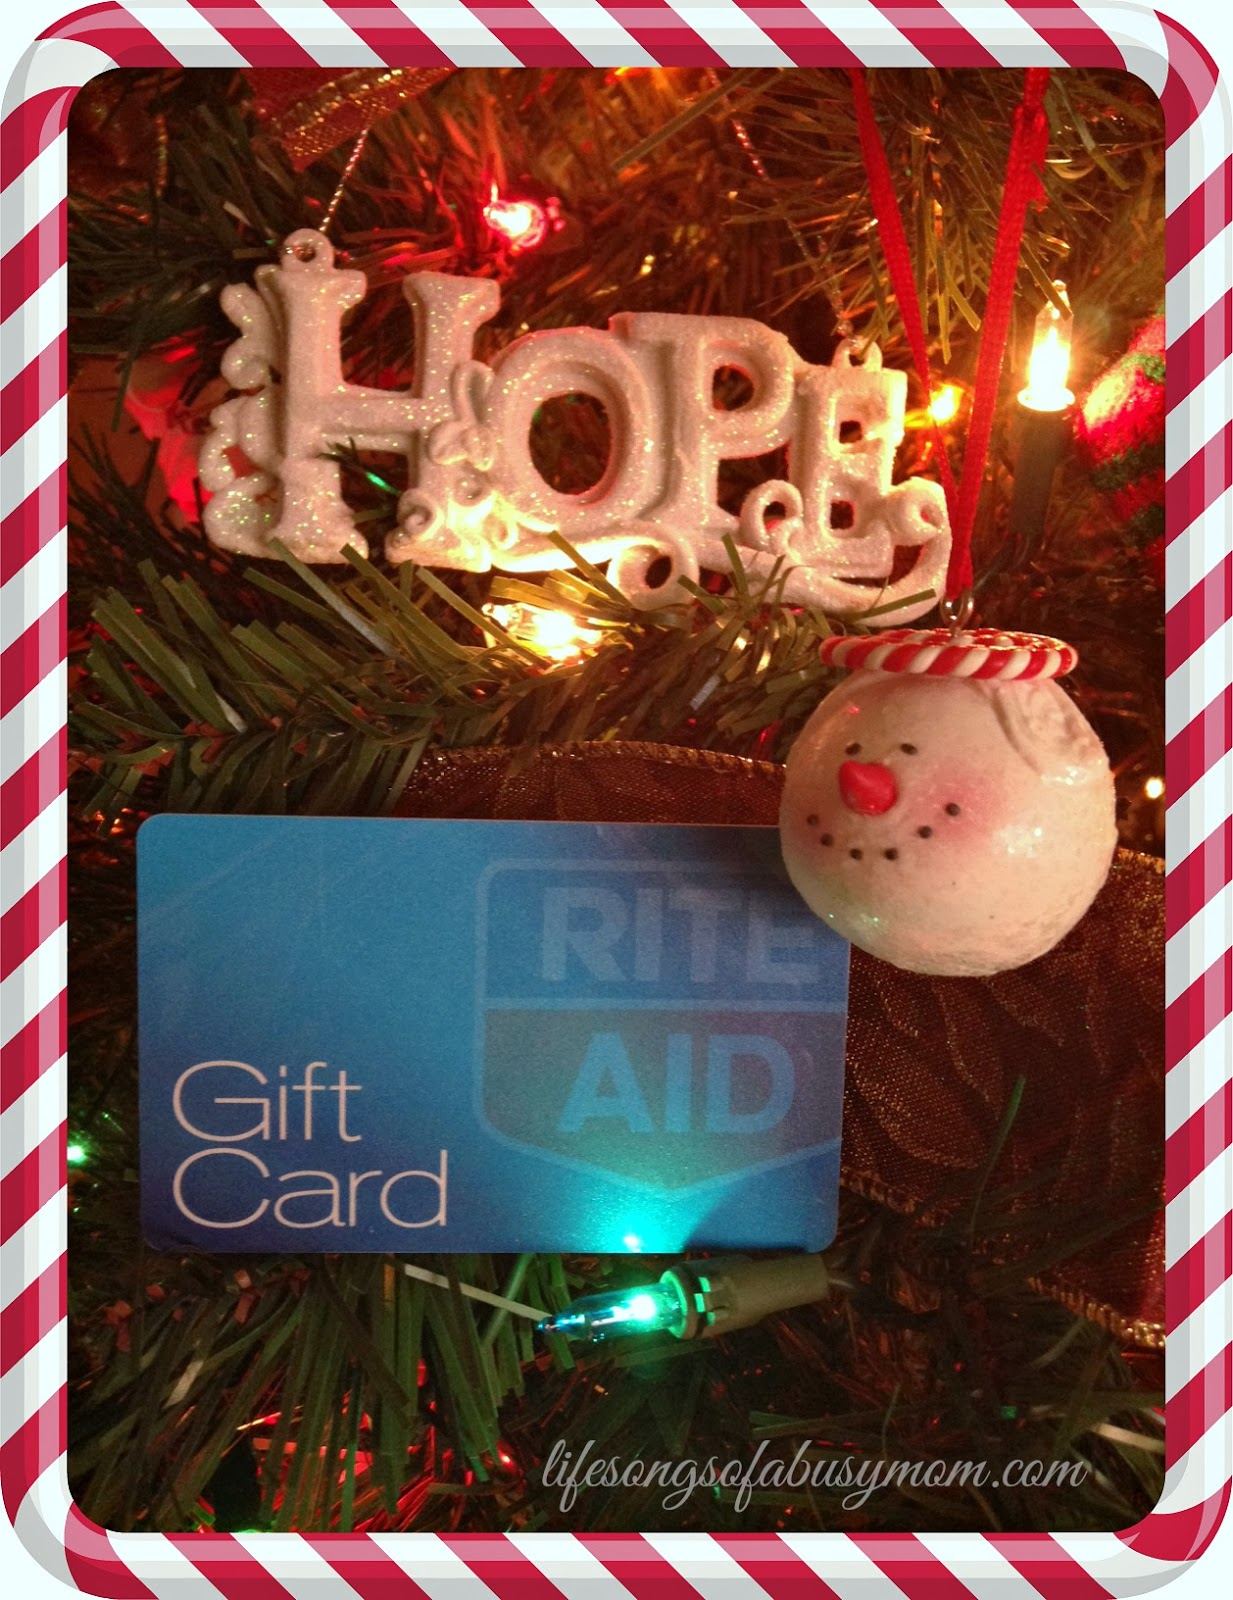 Life Songs Of A Busy Mom: Rite Aid Holiday Gifting Tree & Giveaway!